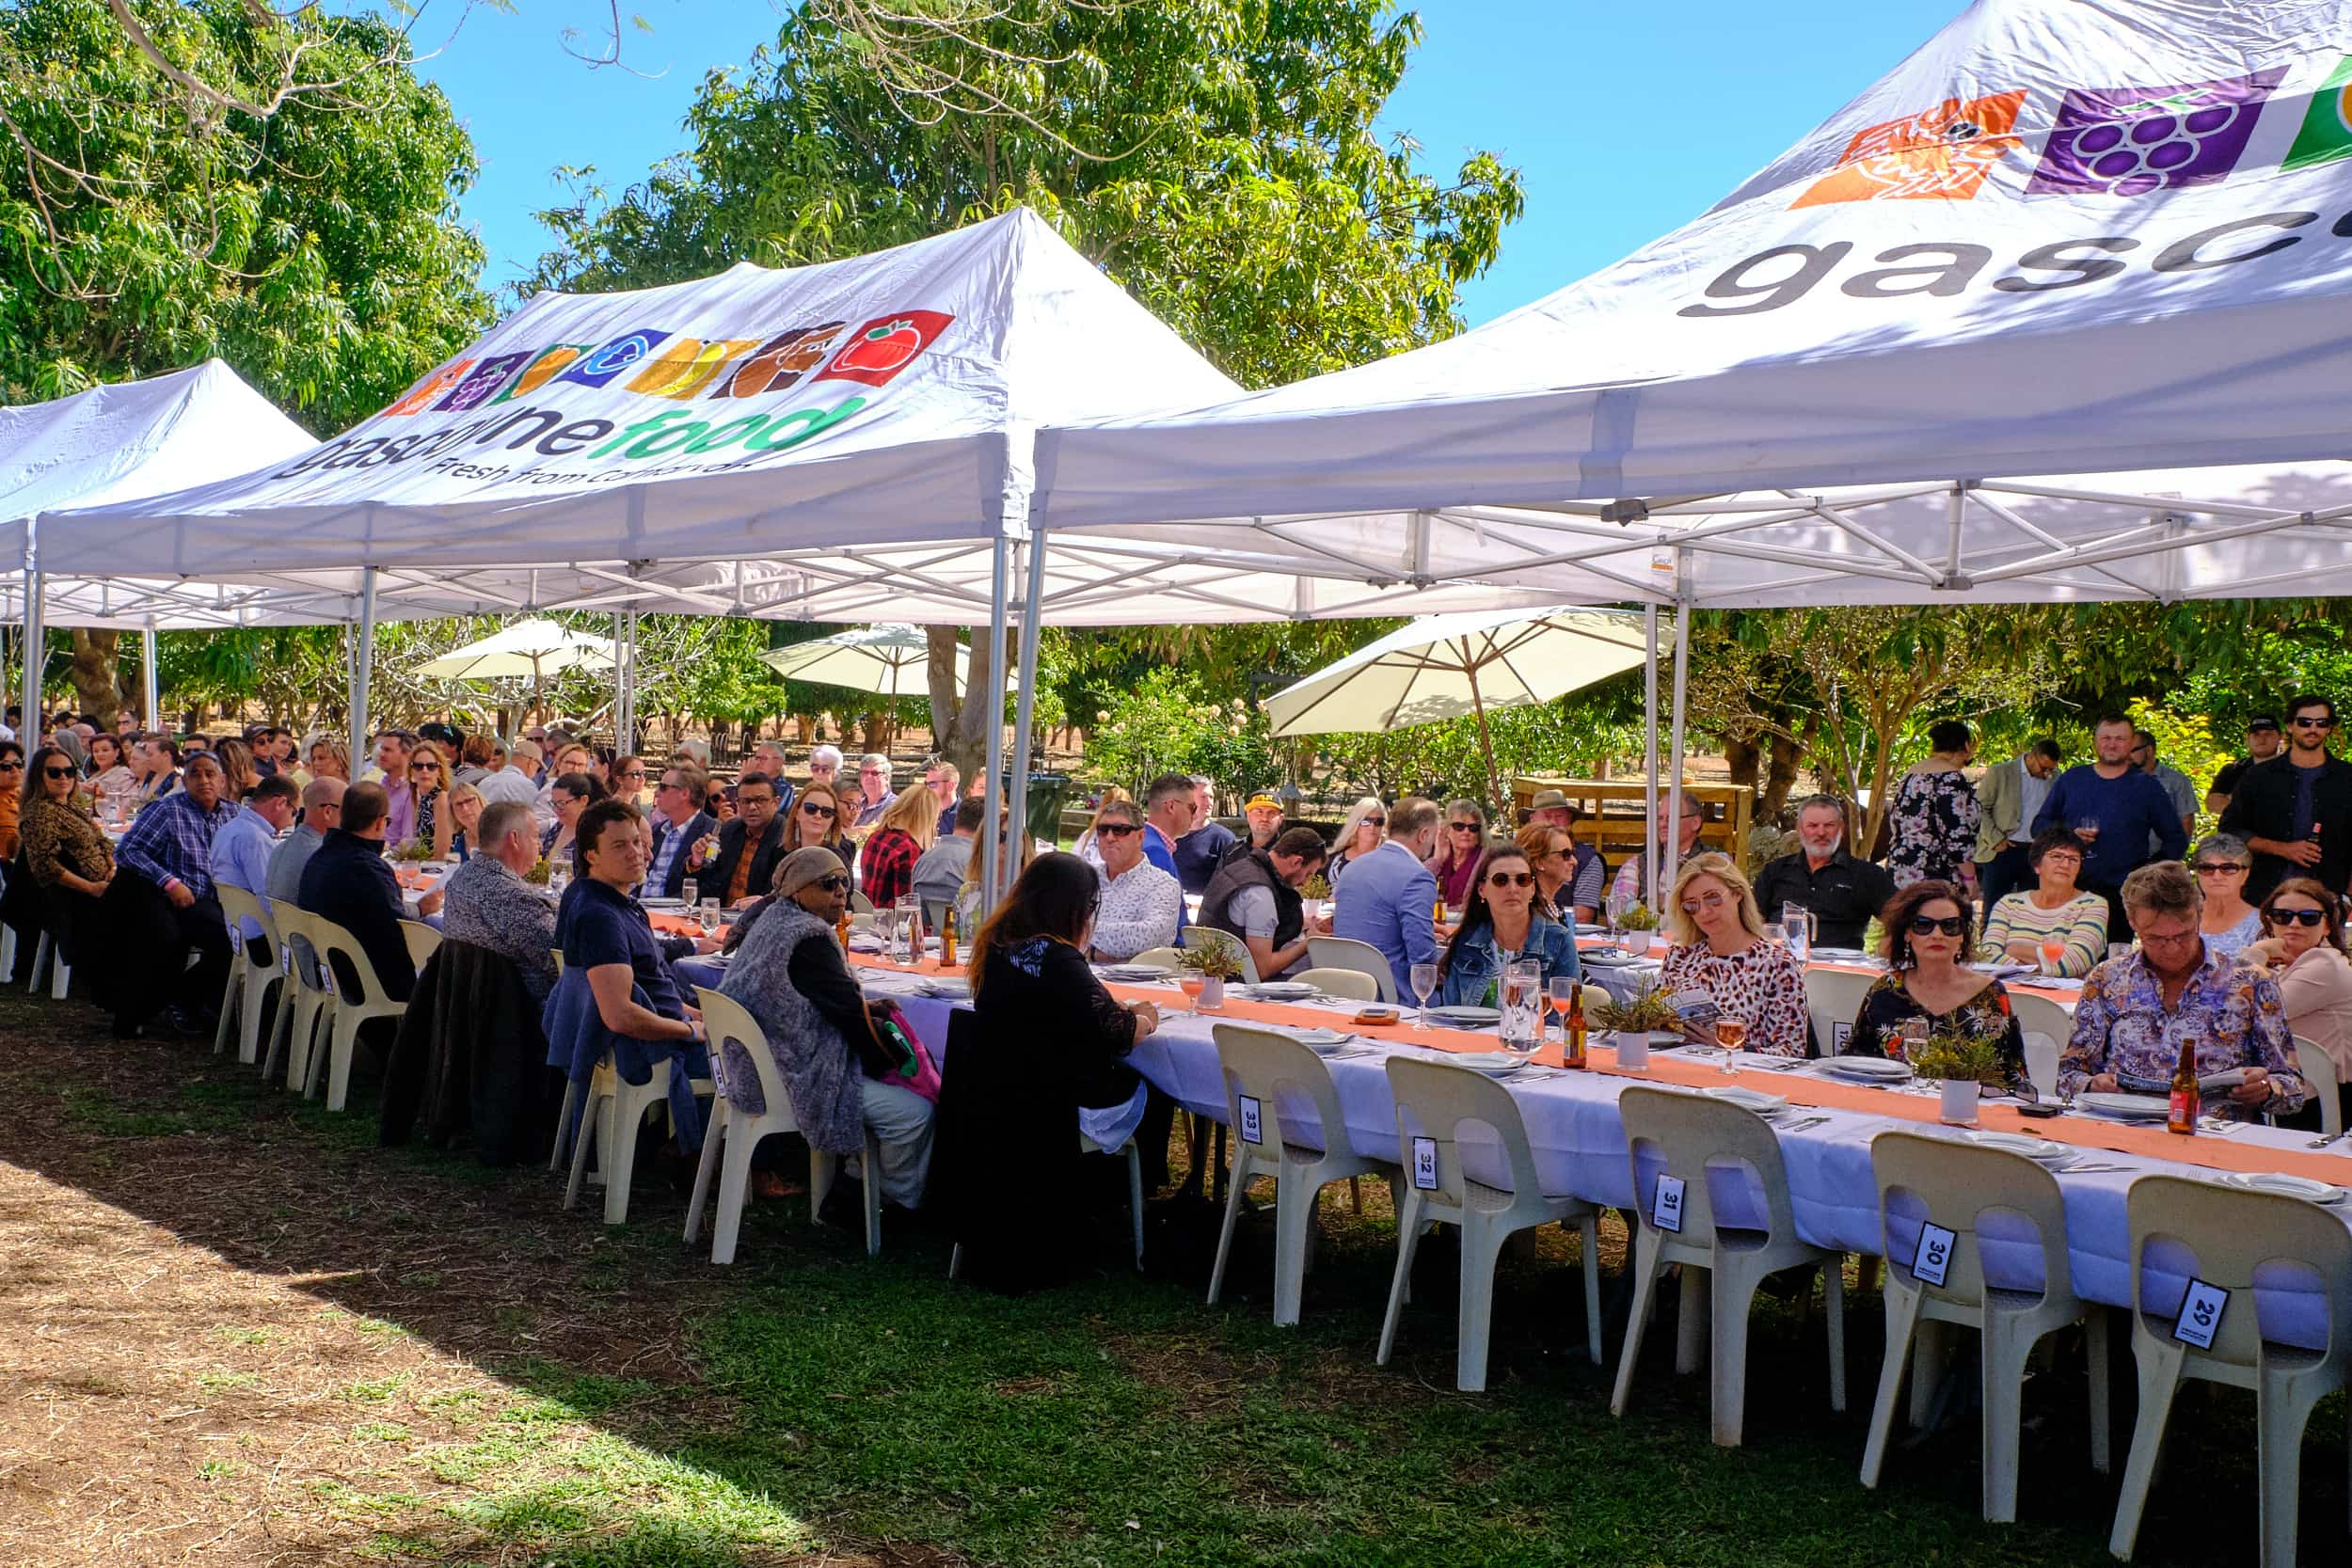 Gascoyne Food Festival 2019, part 1: Carnarvon and the Long Table Lunch